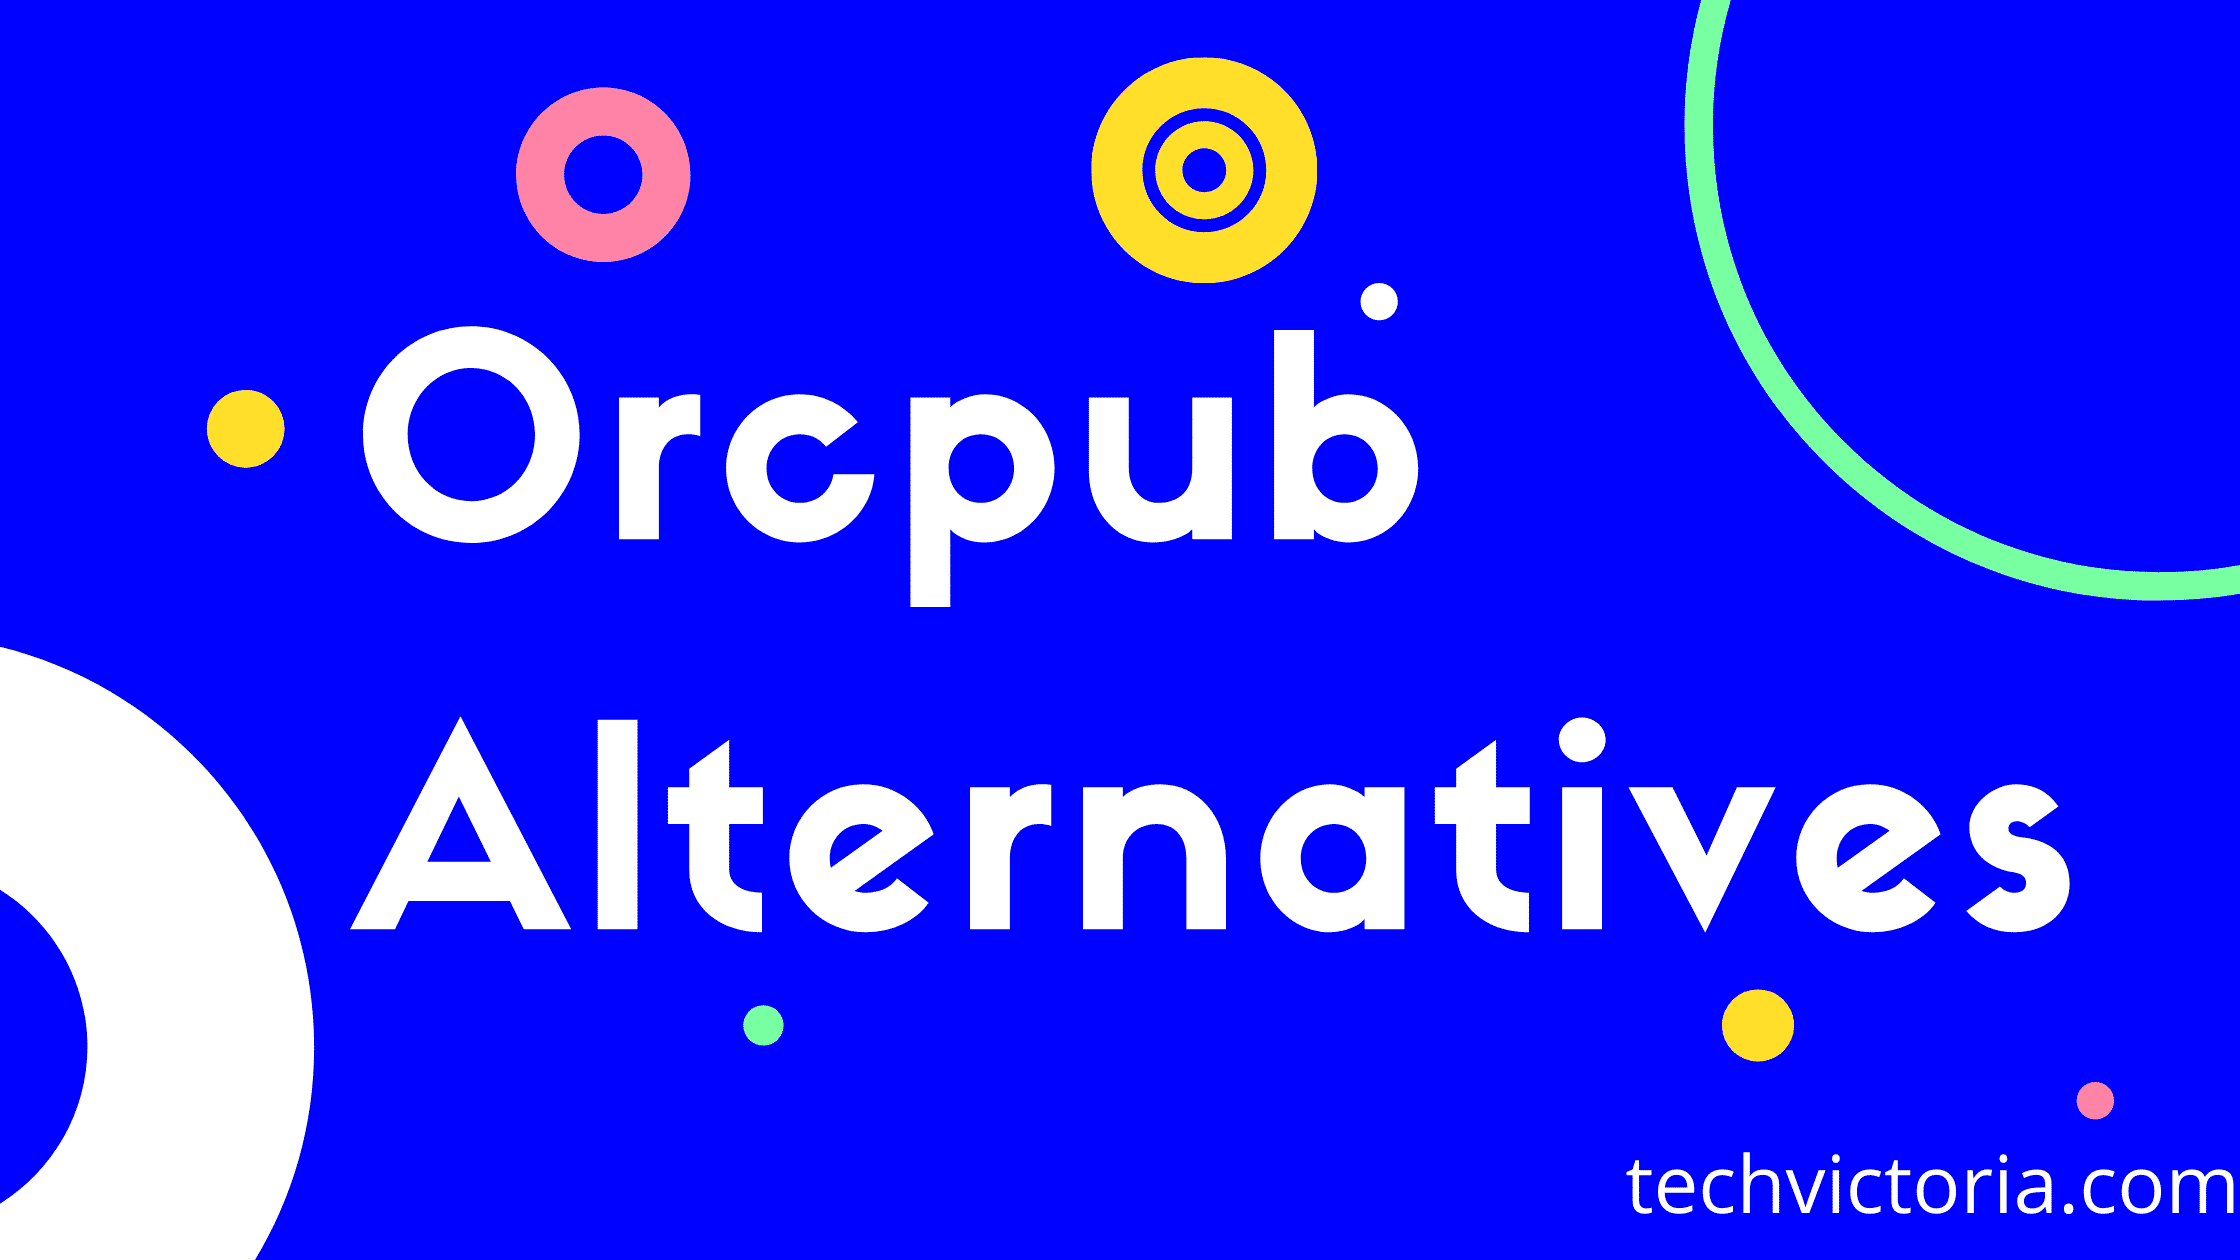 Orcpub Alternatives